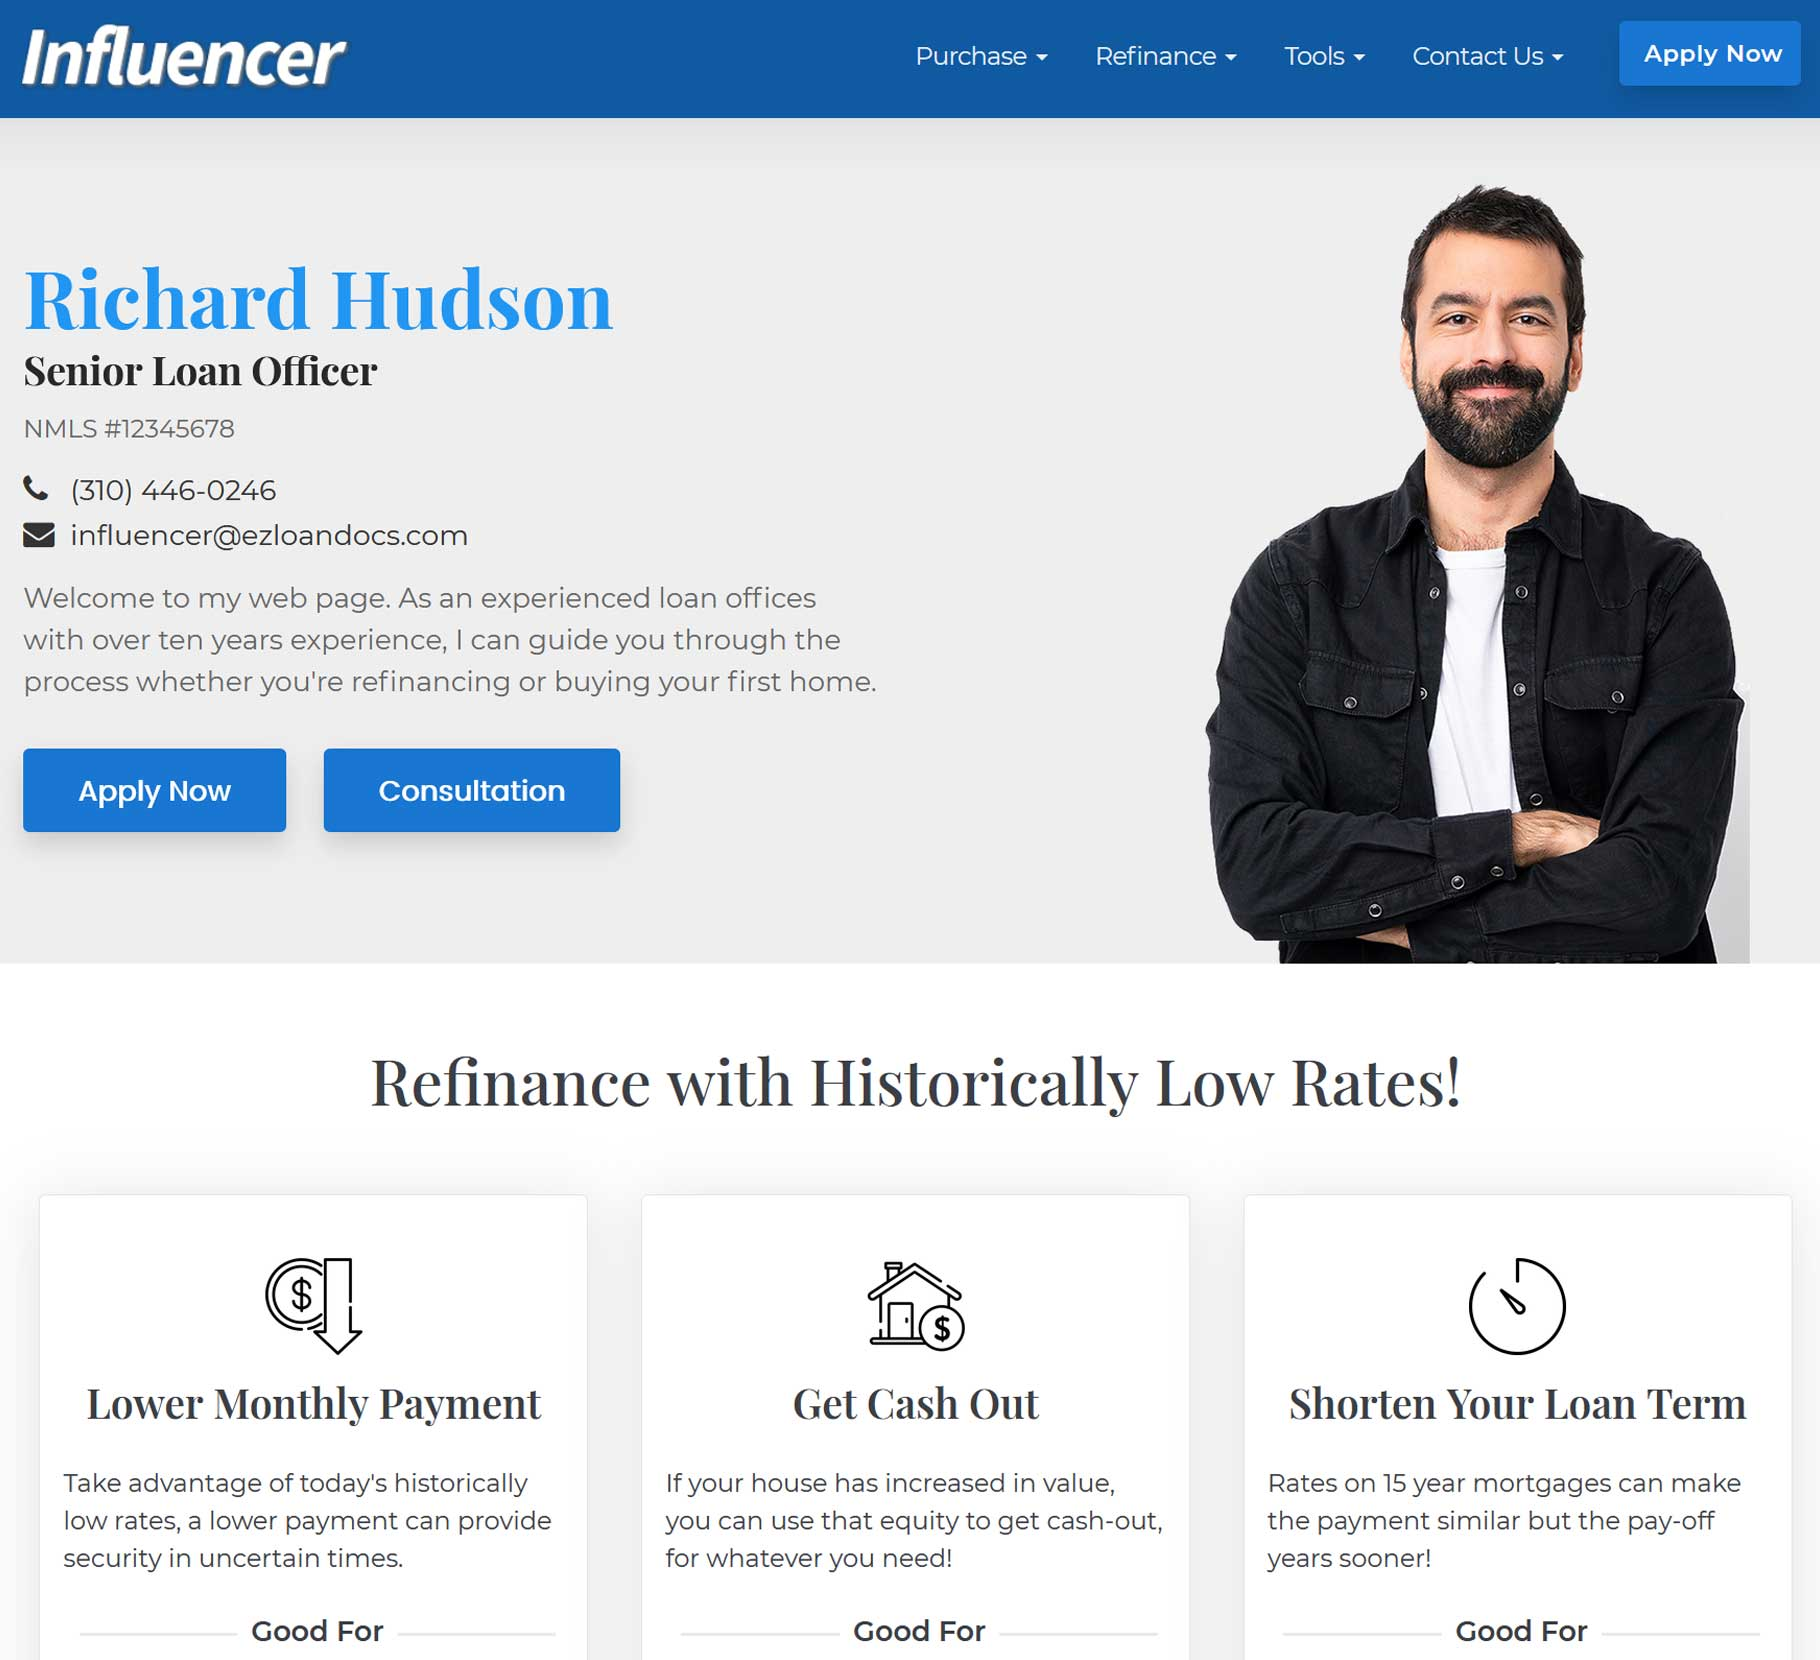 Landing Pages and Funnels